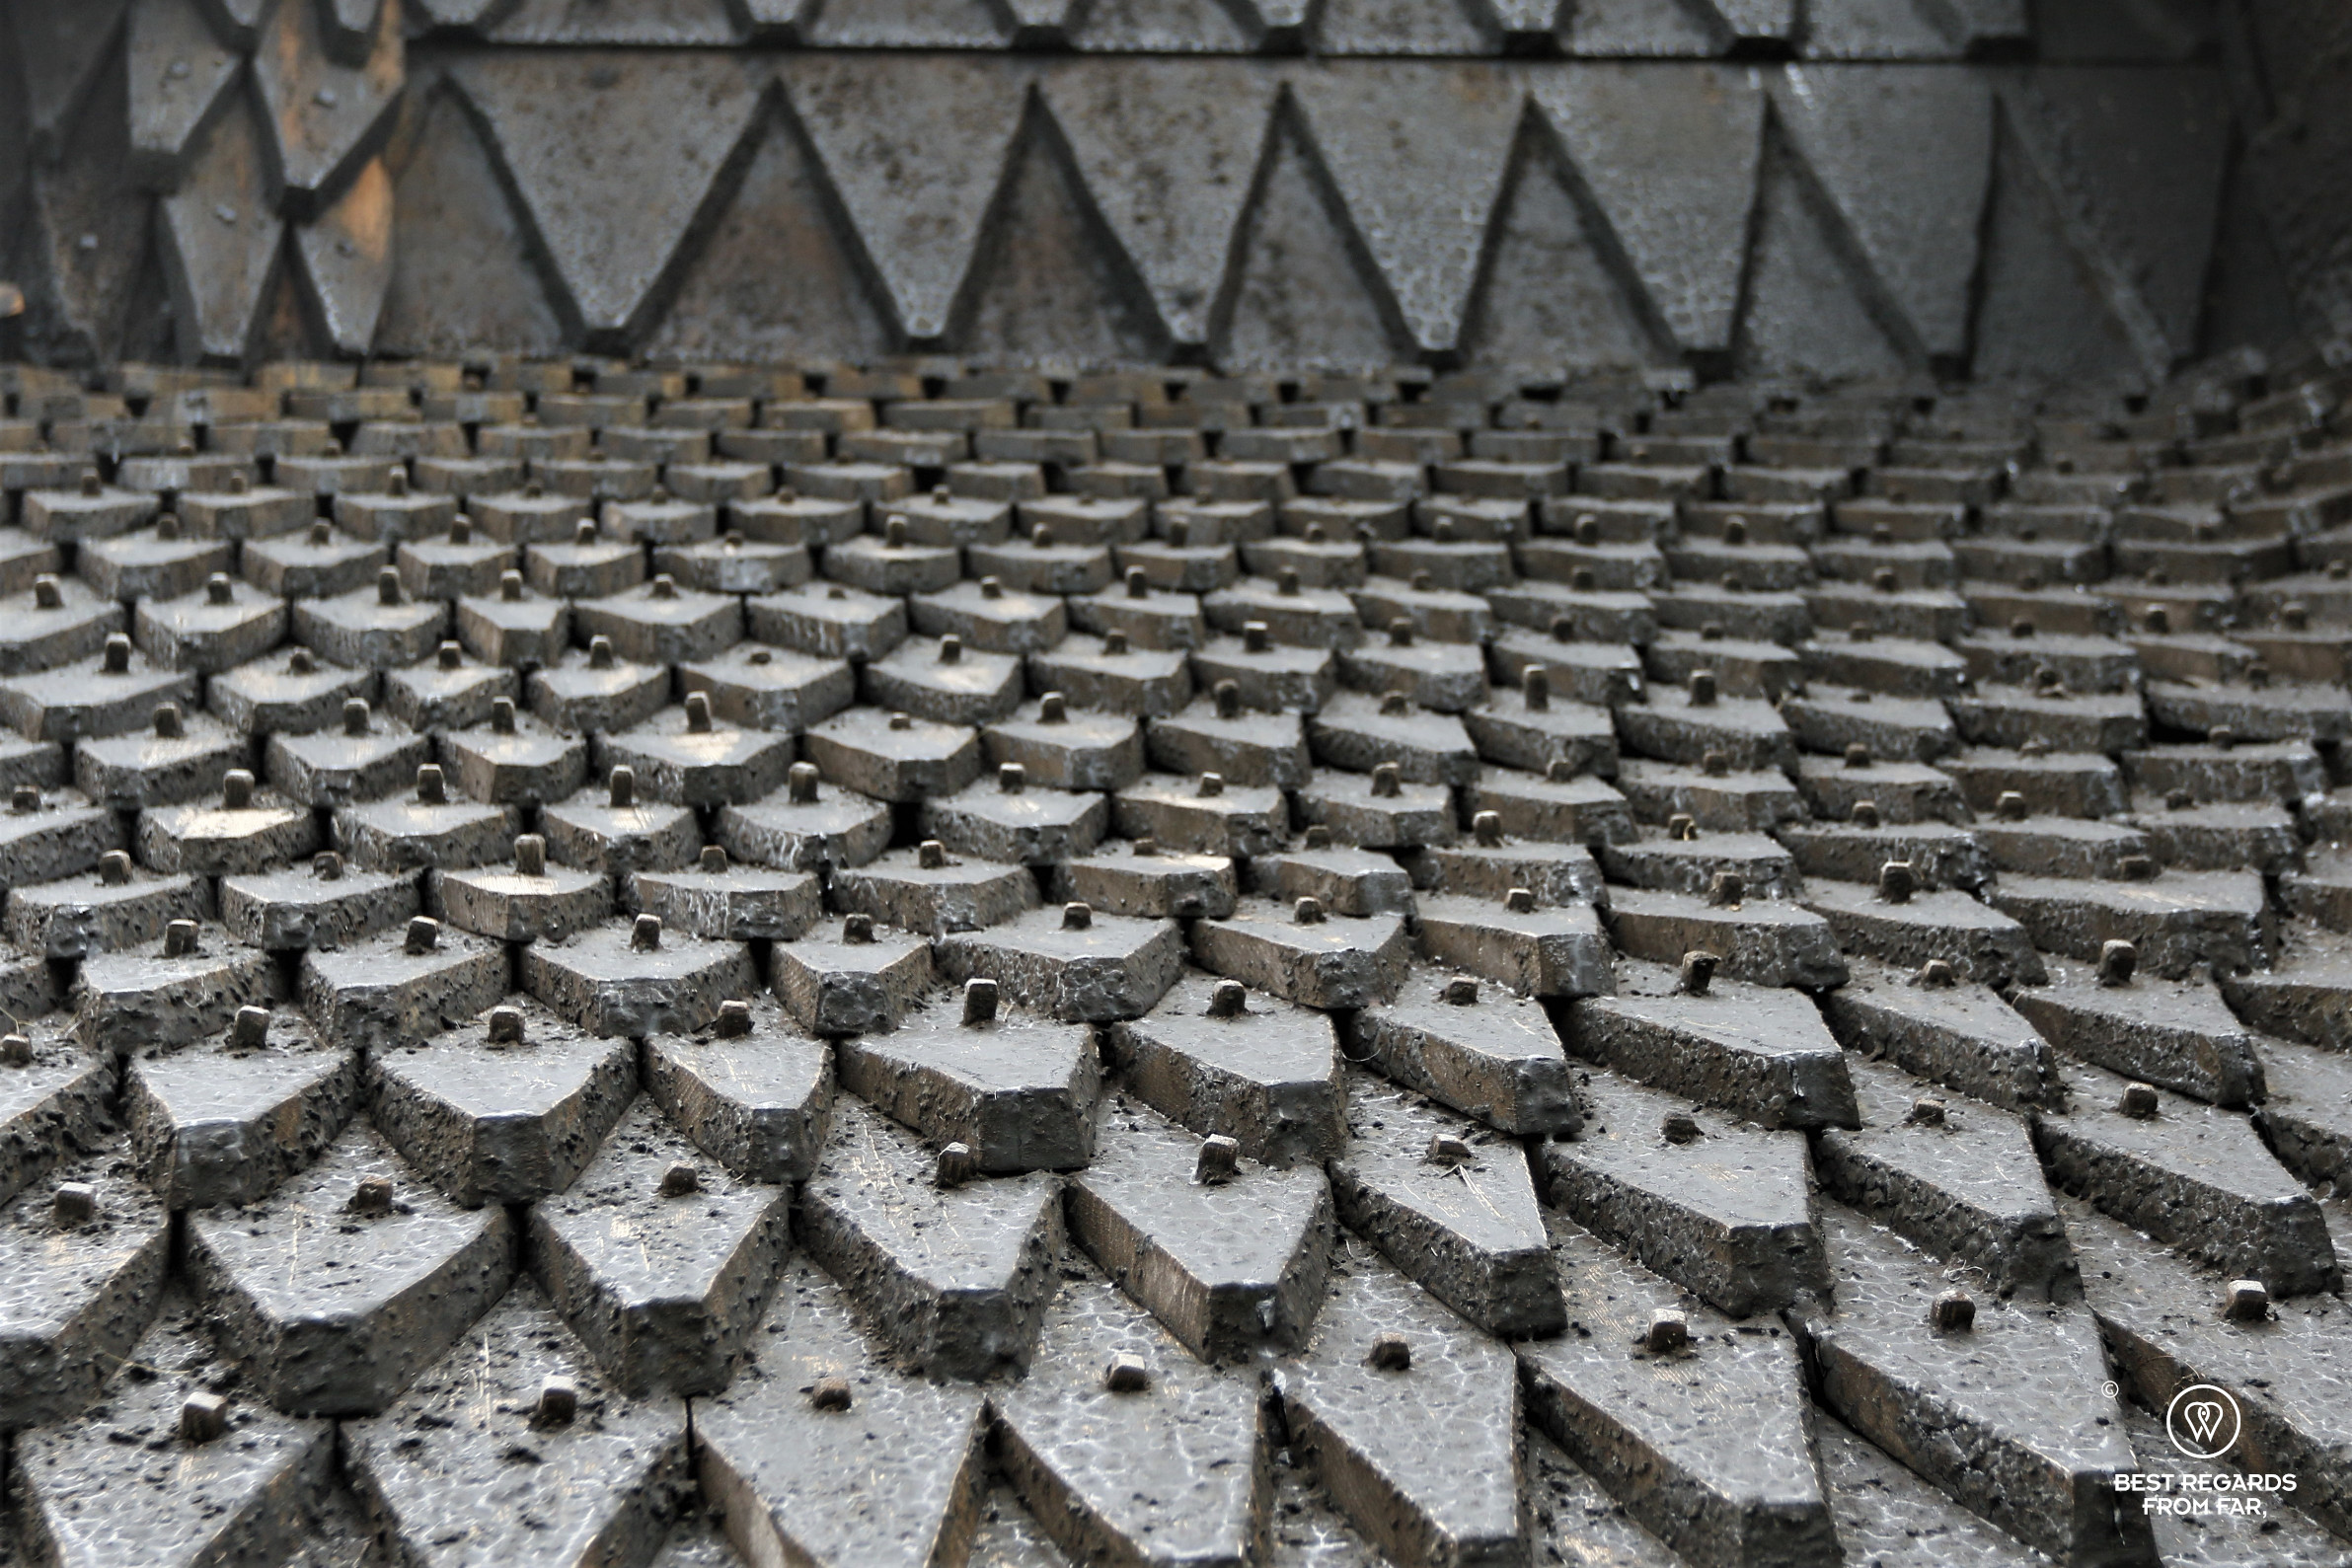 Some of the 17,000 shingles covering Eidsborg Stave Church